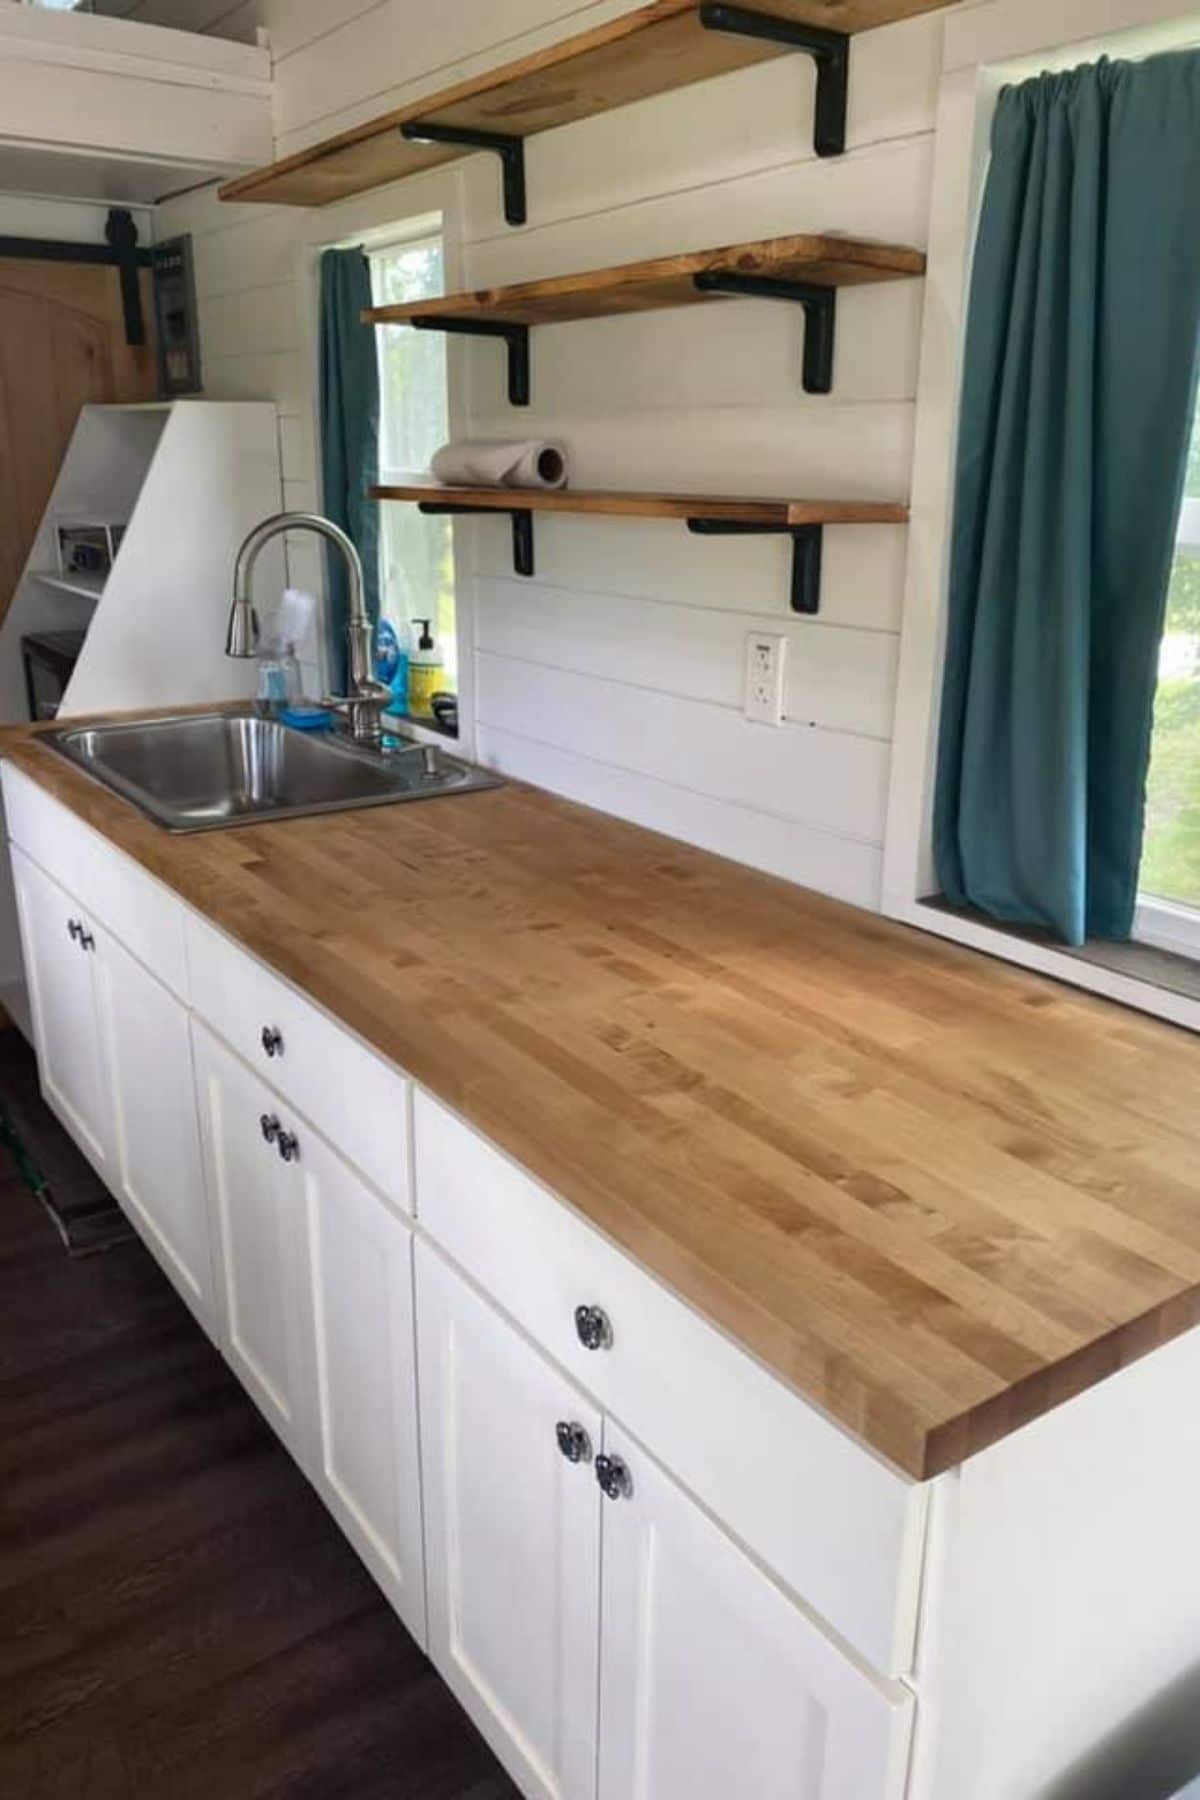 Butcher block counter with stainless steel sink and butcher block counter